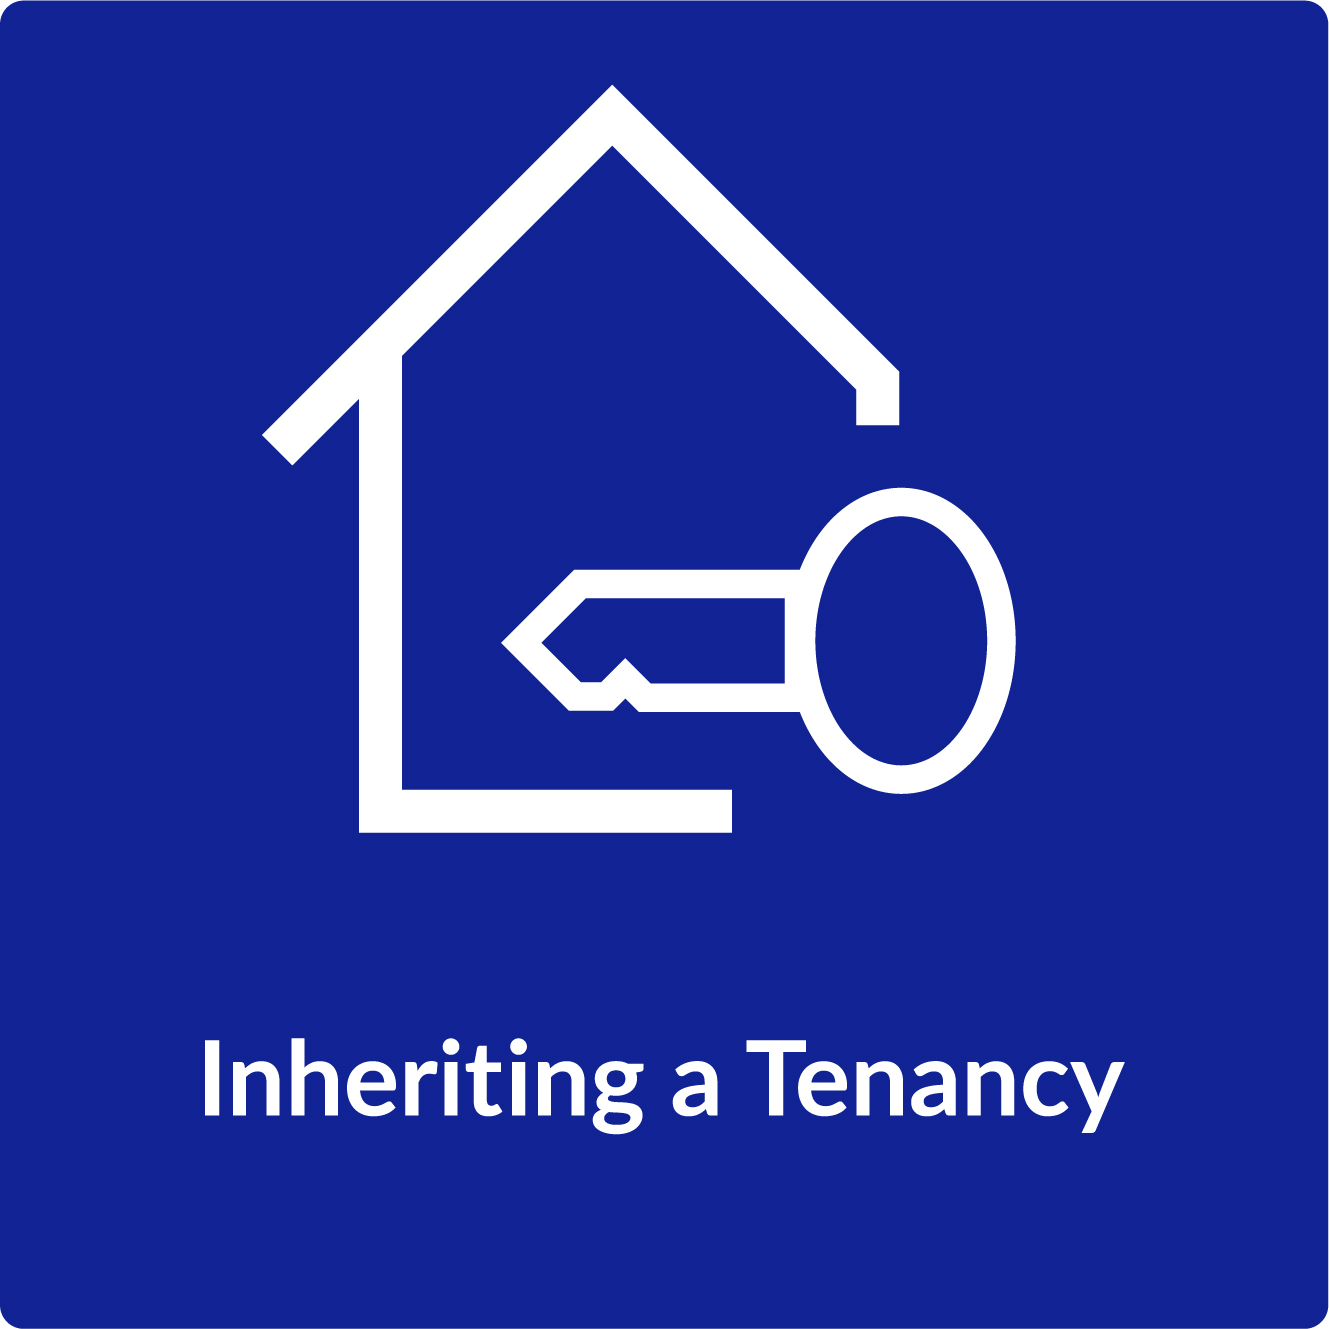 Inheriting a Tenancy